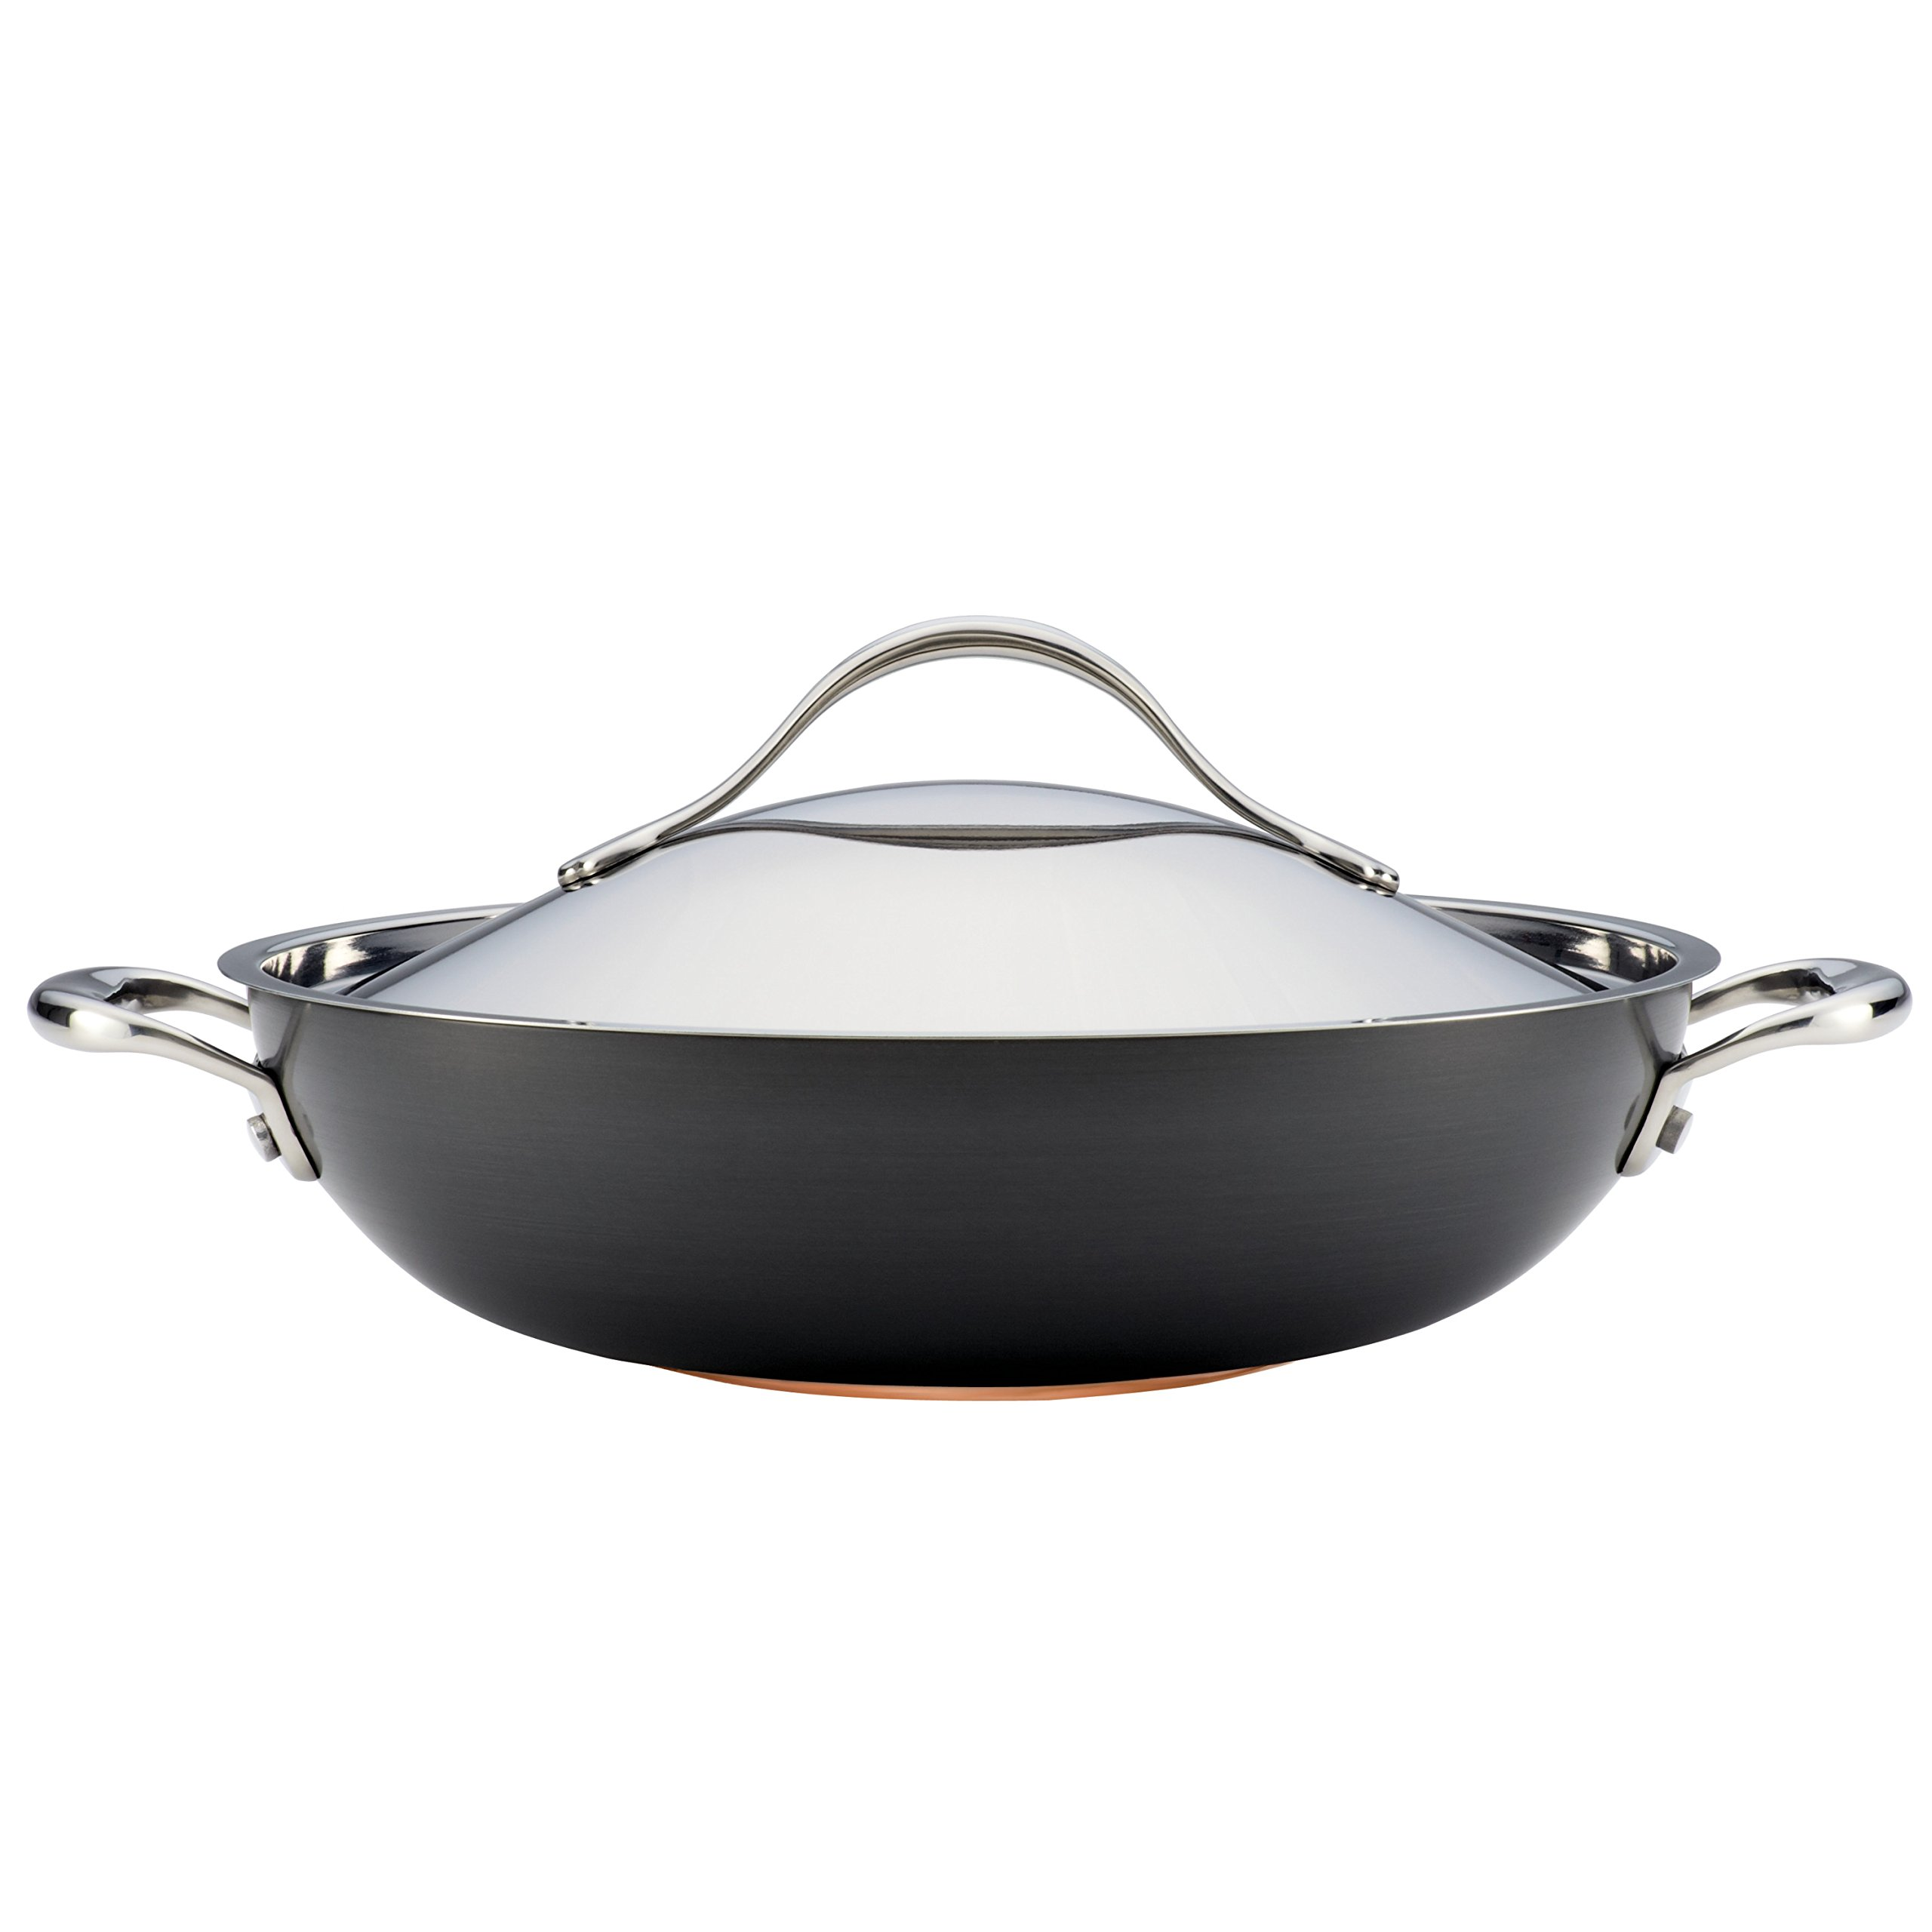 Anolon Nouvelle Copper Hard-Anodized Nonstick 12-Inch Covered Wok, Dark Gray